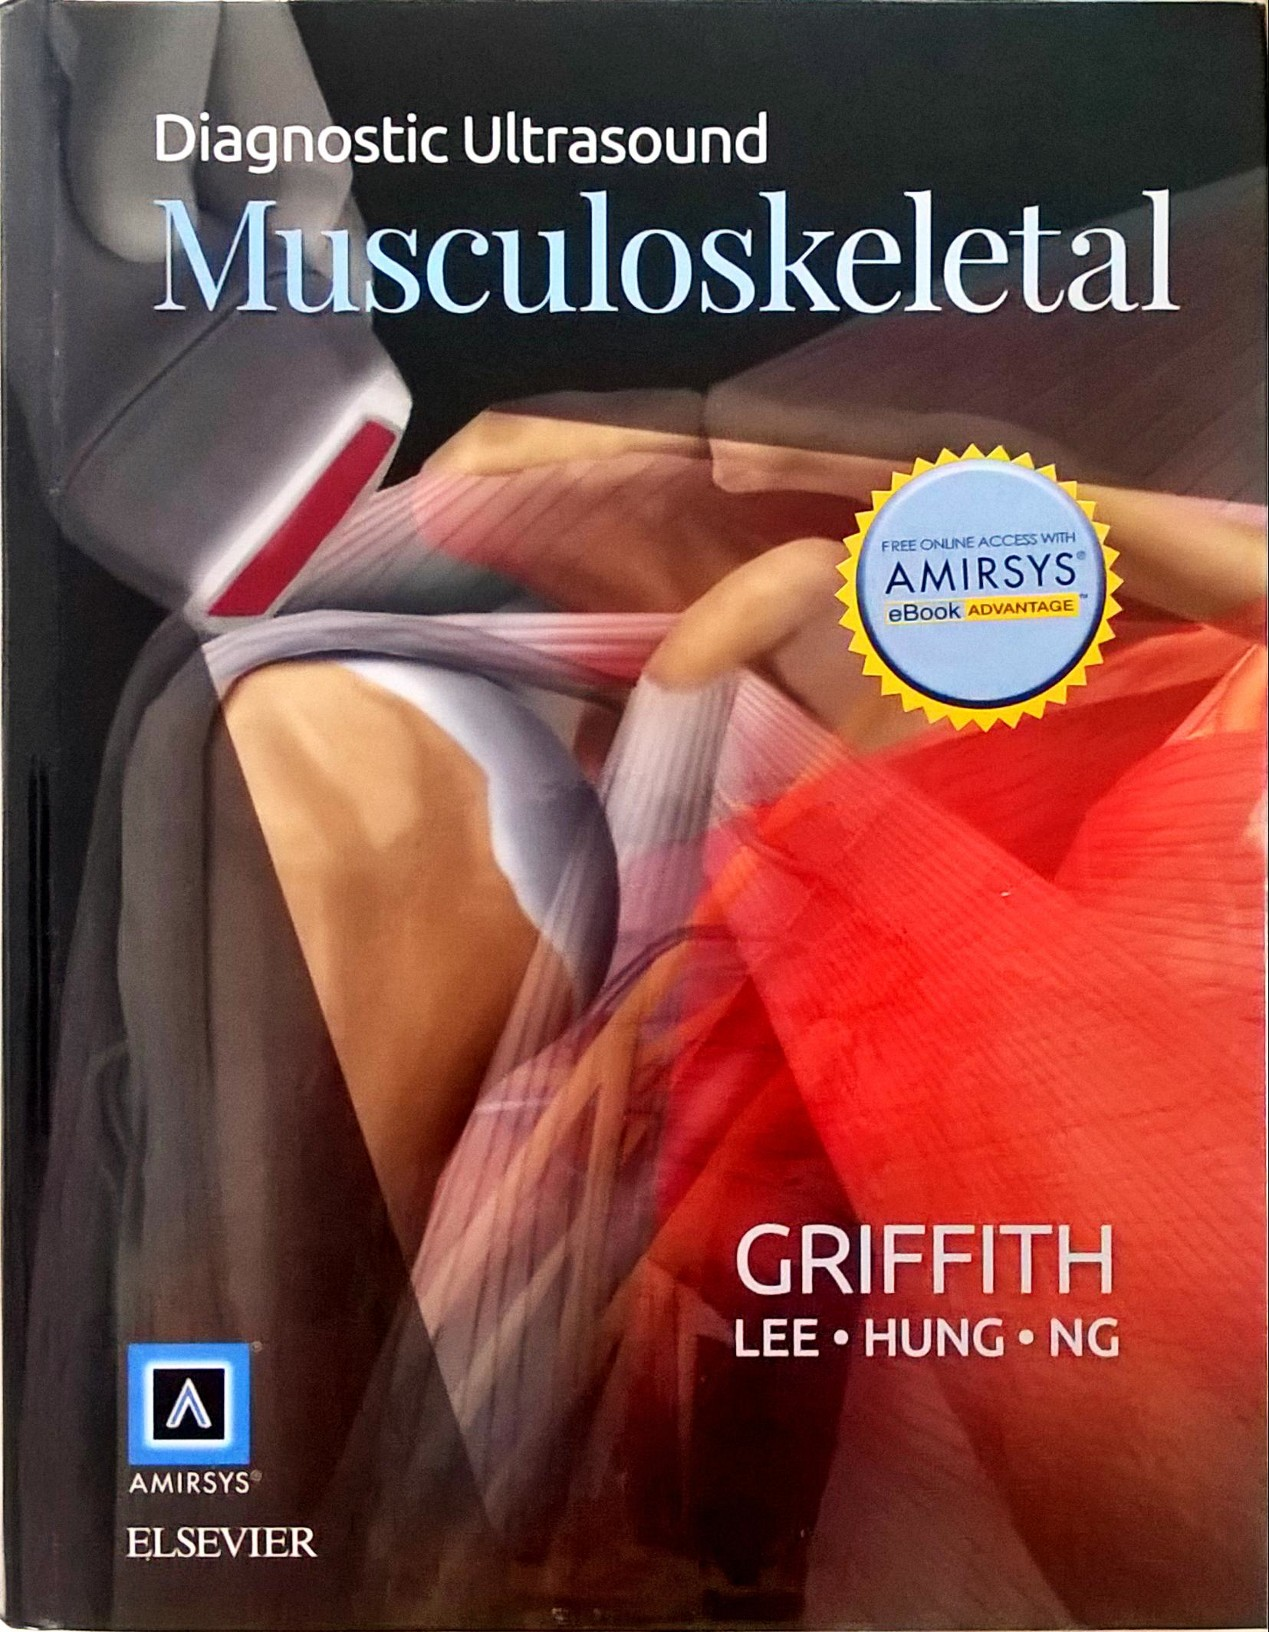 Diagnostic Ultrasound: Musculoskeletal. James F Griffith, 2015, Elsevier